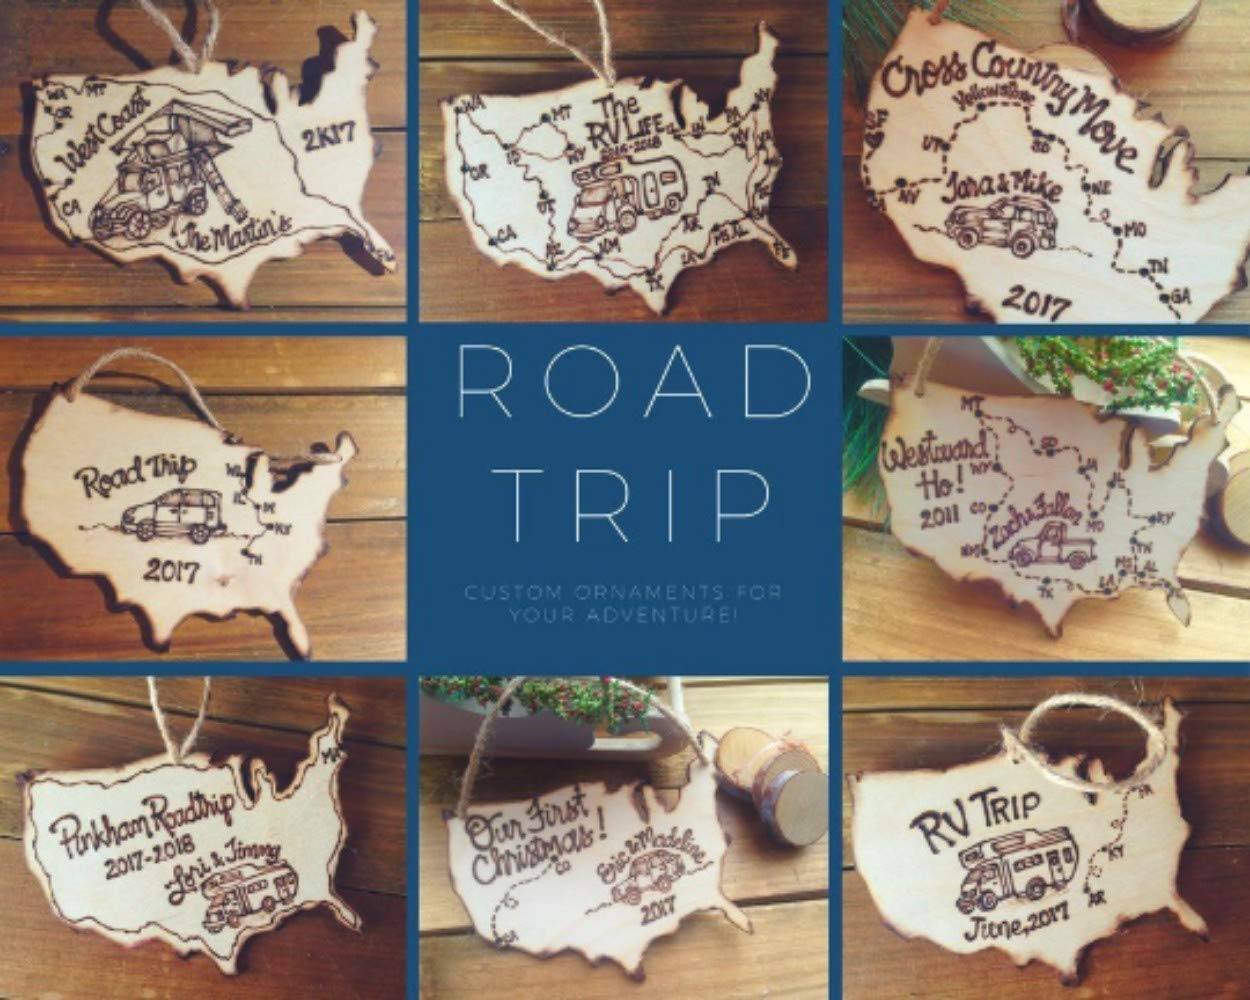 Road Trip Ornament to celebrate your fu 価格 交渉 送料無料新品 送料無料 Family Vacation travels